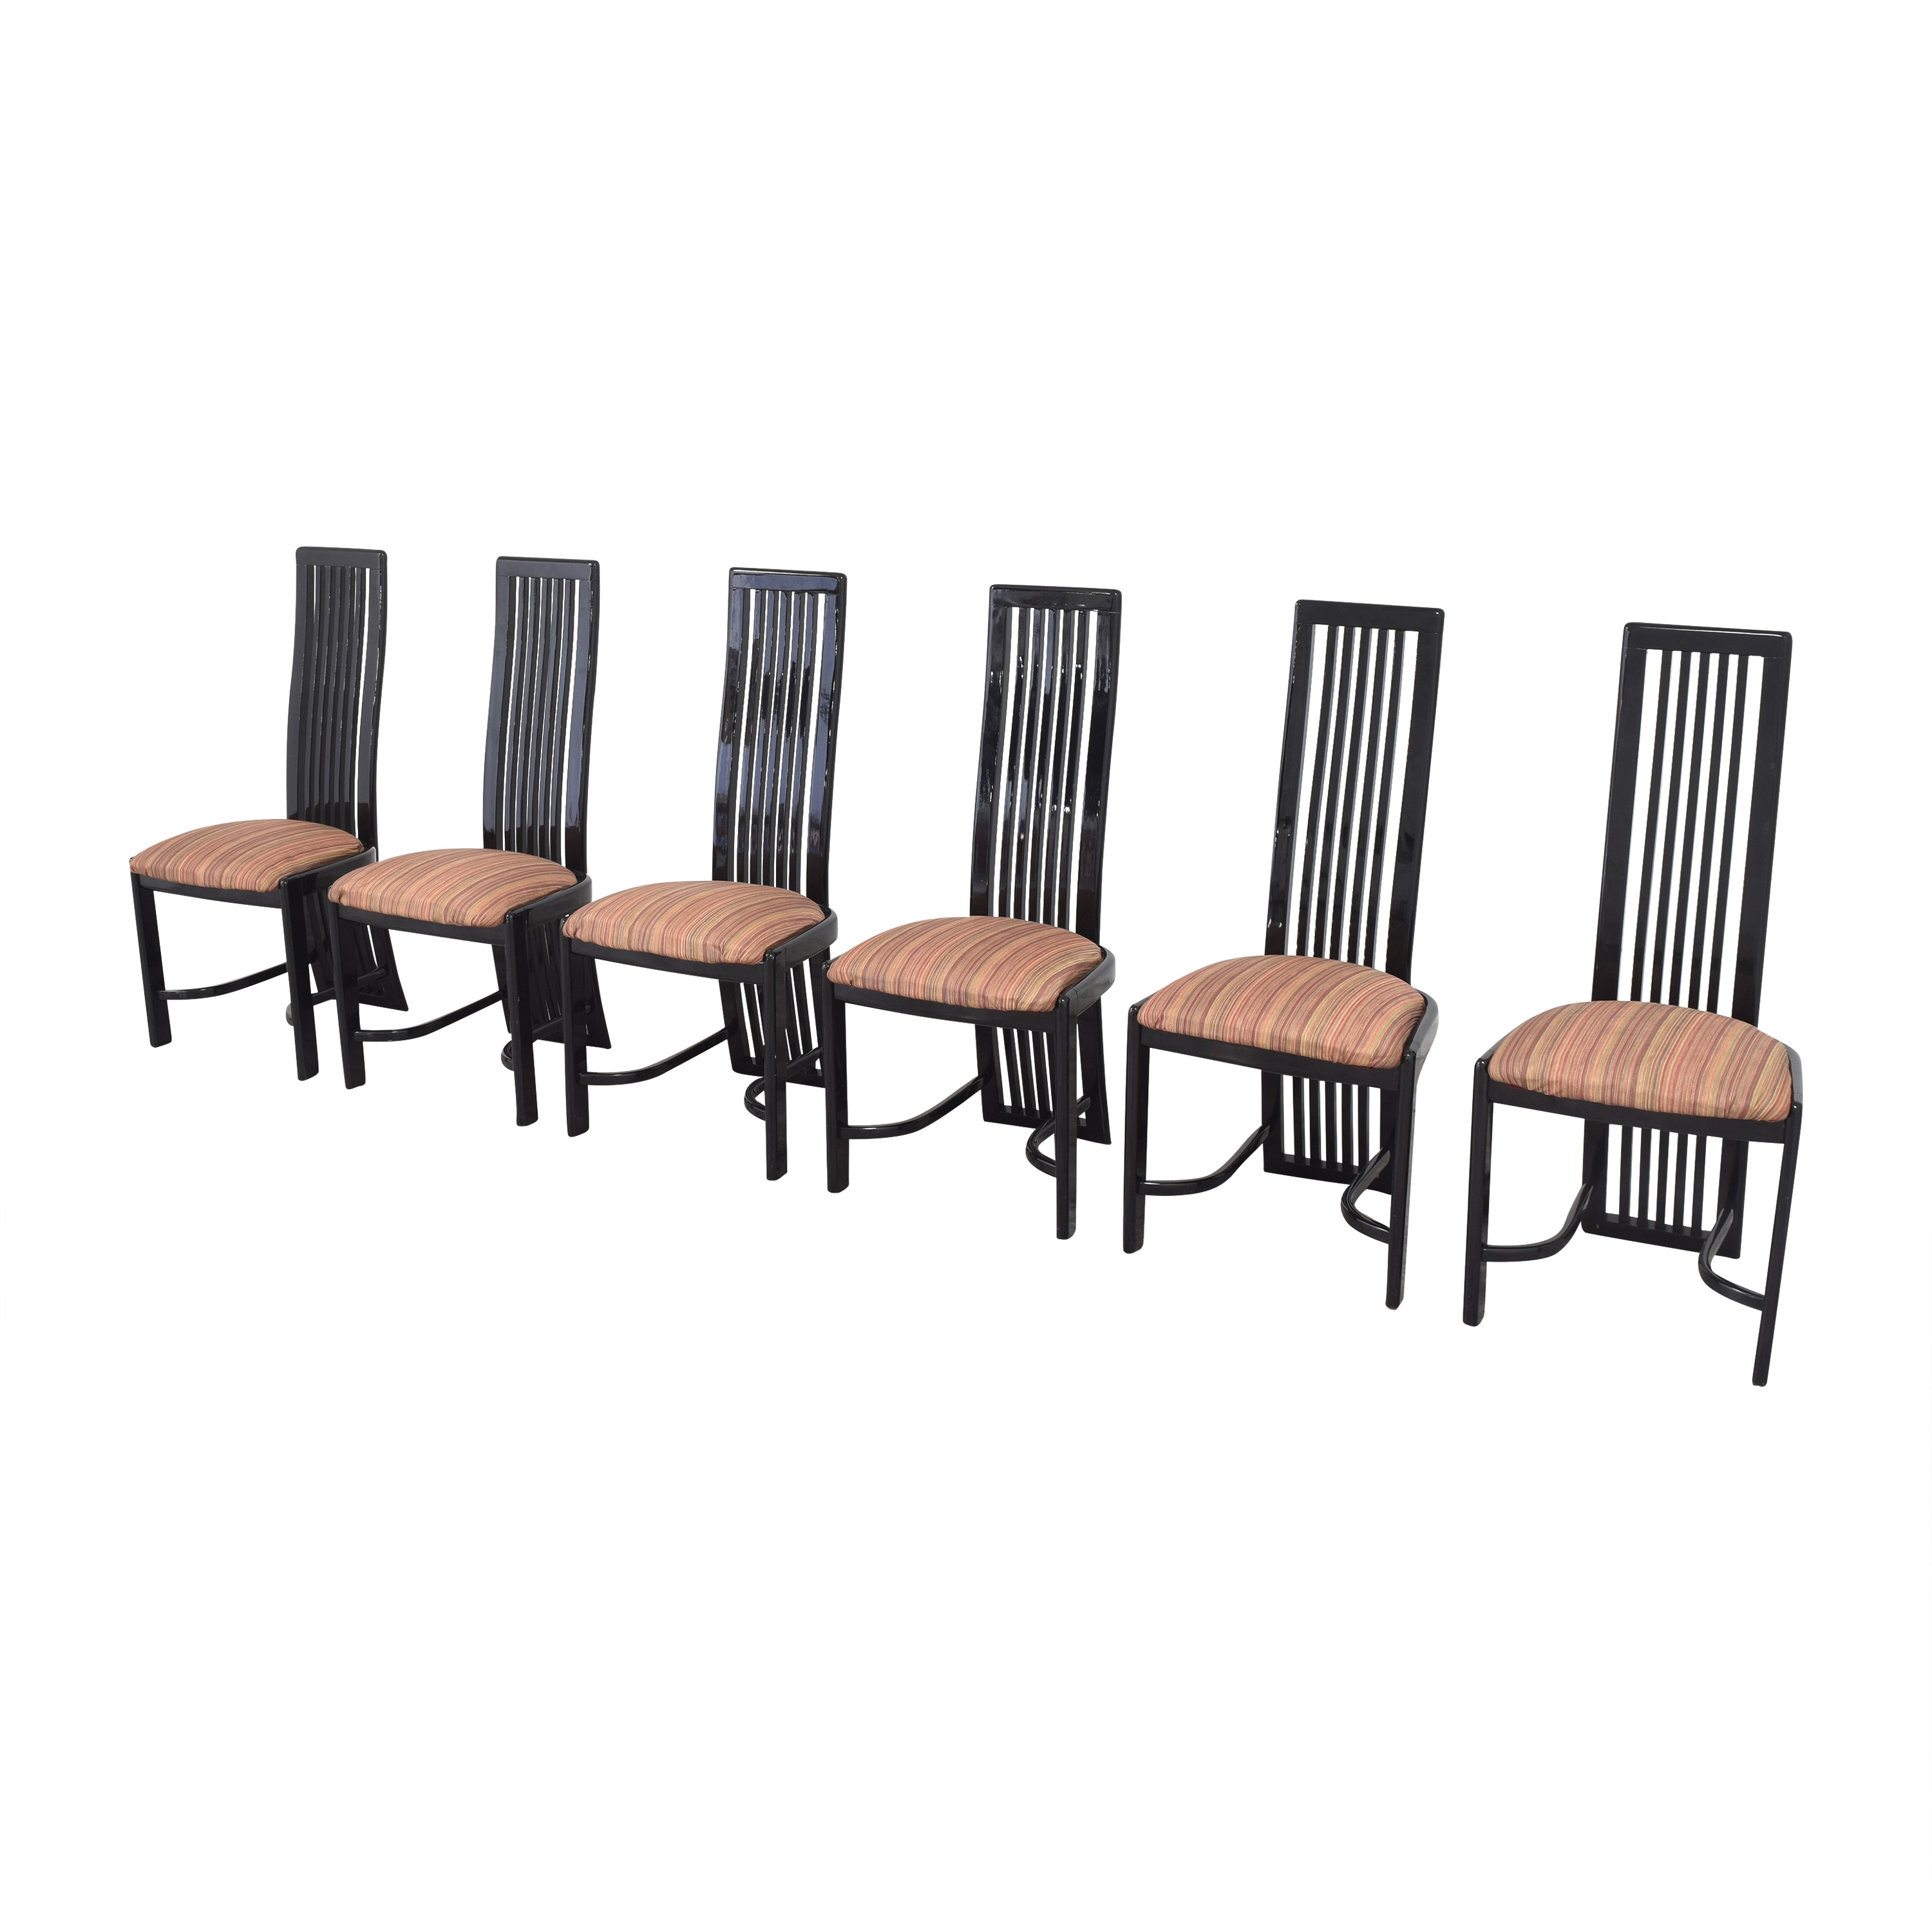 Italian-Style High Back Dining Chairs / Chairs